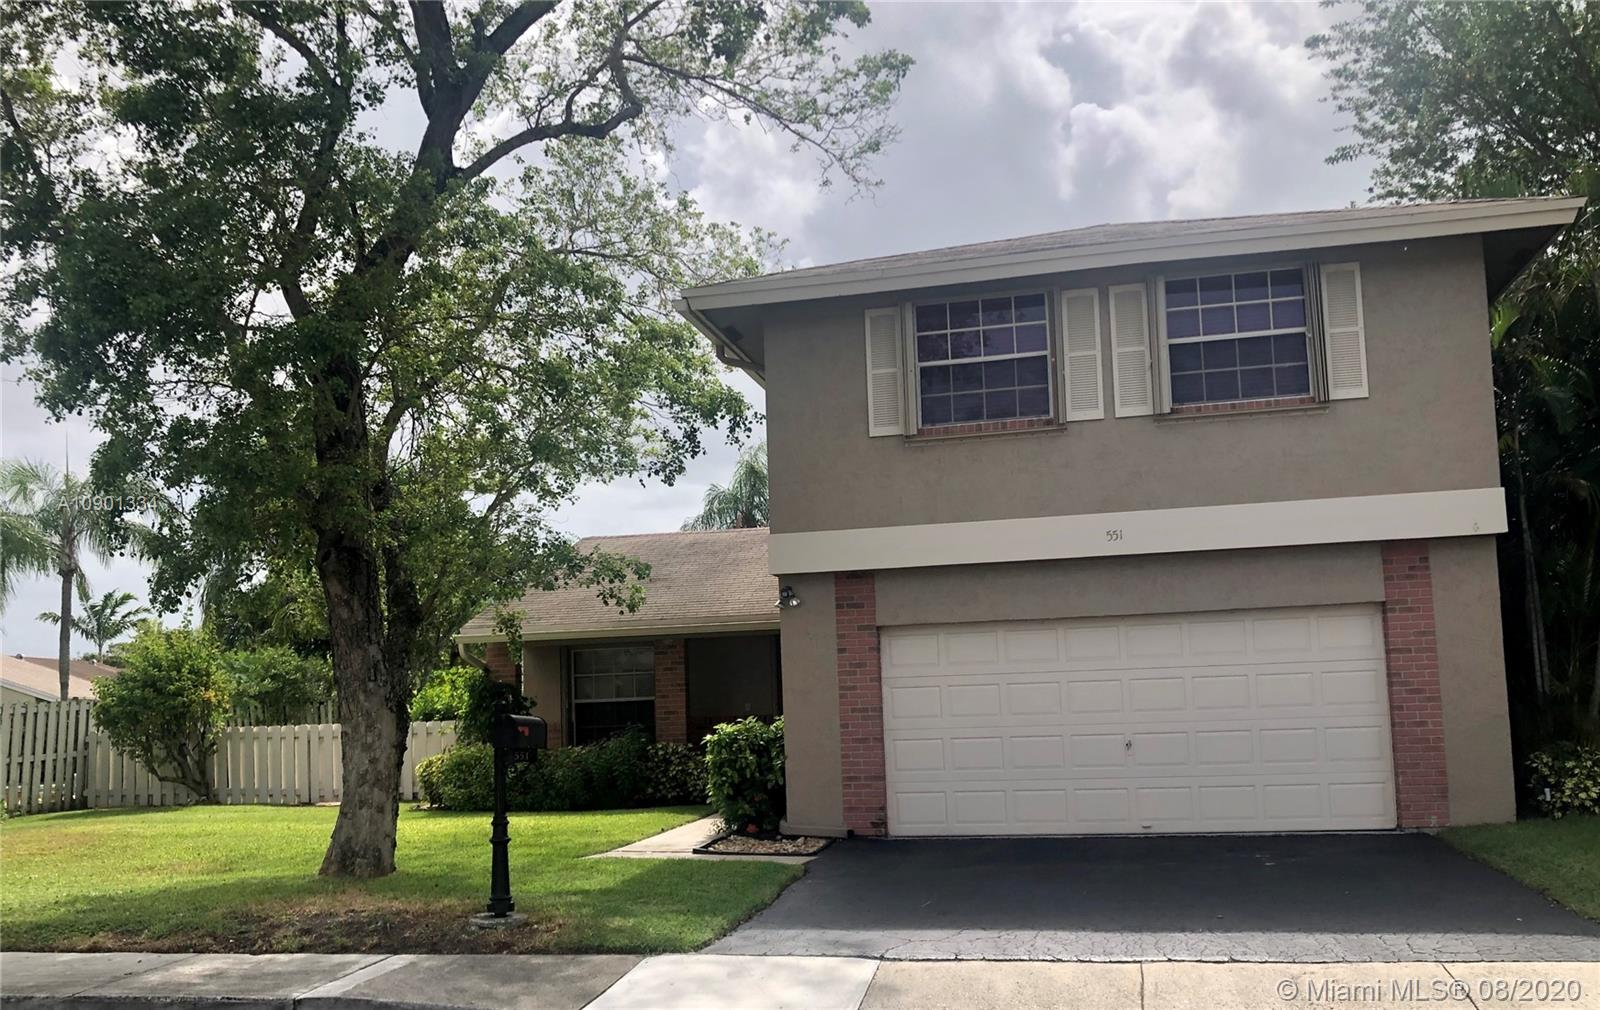 Shenandoah - 551 Auburn Way, Davie, FL 33325